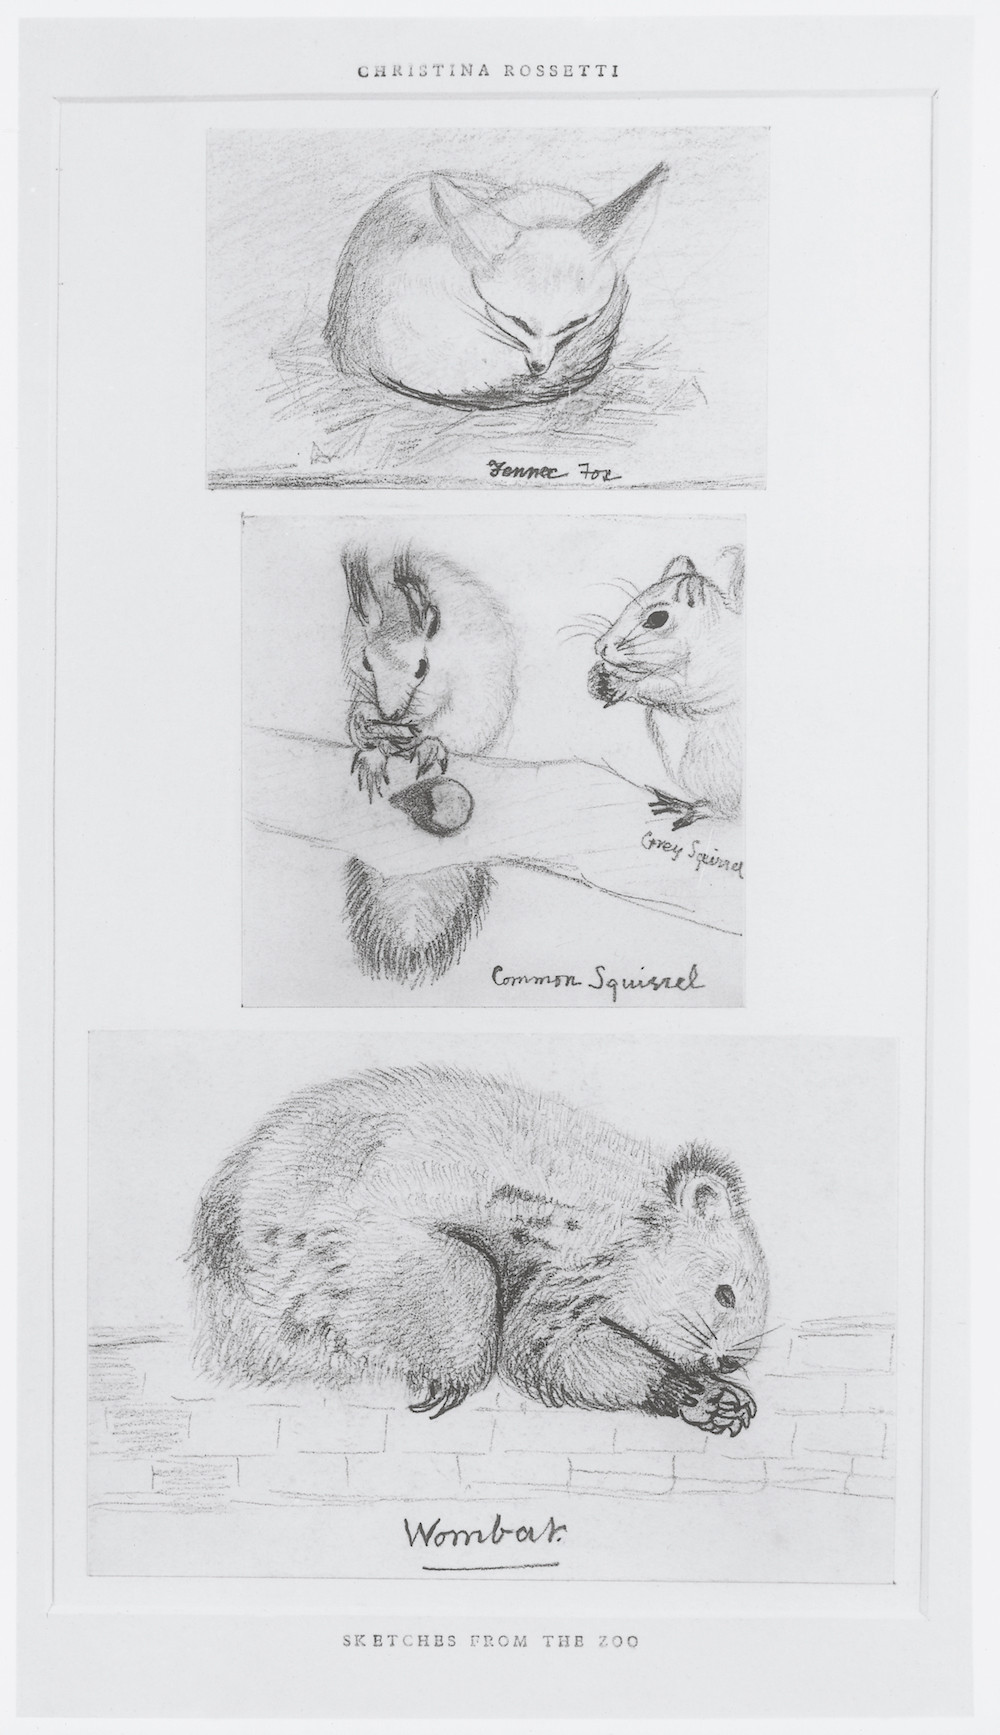 sketch of animals including squirrels and wombat